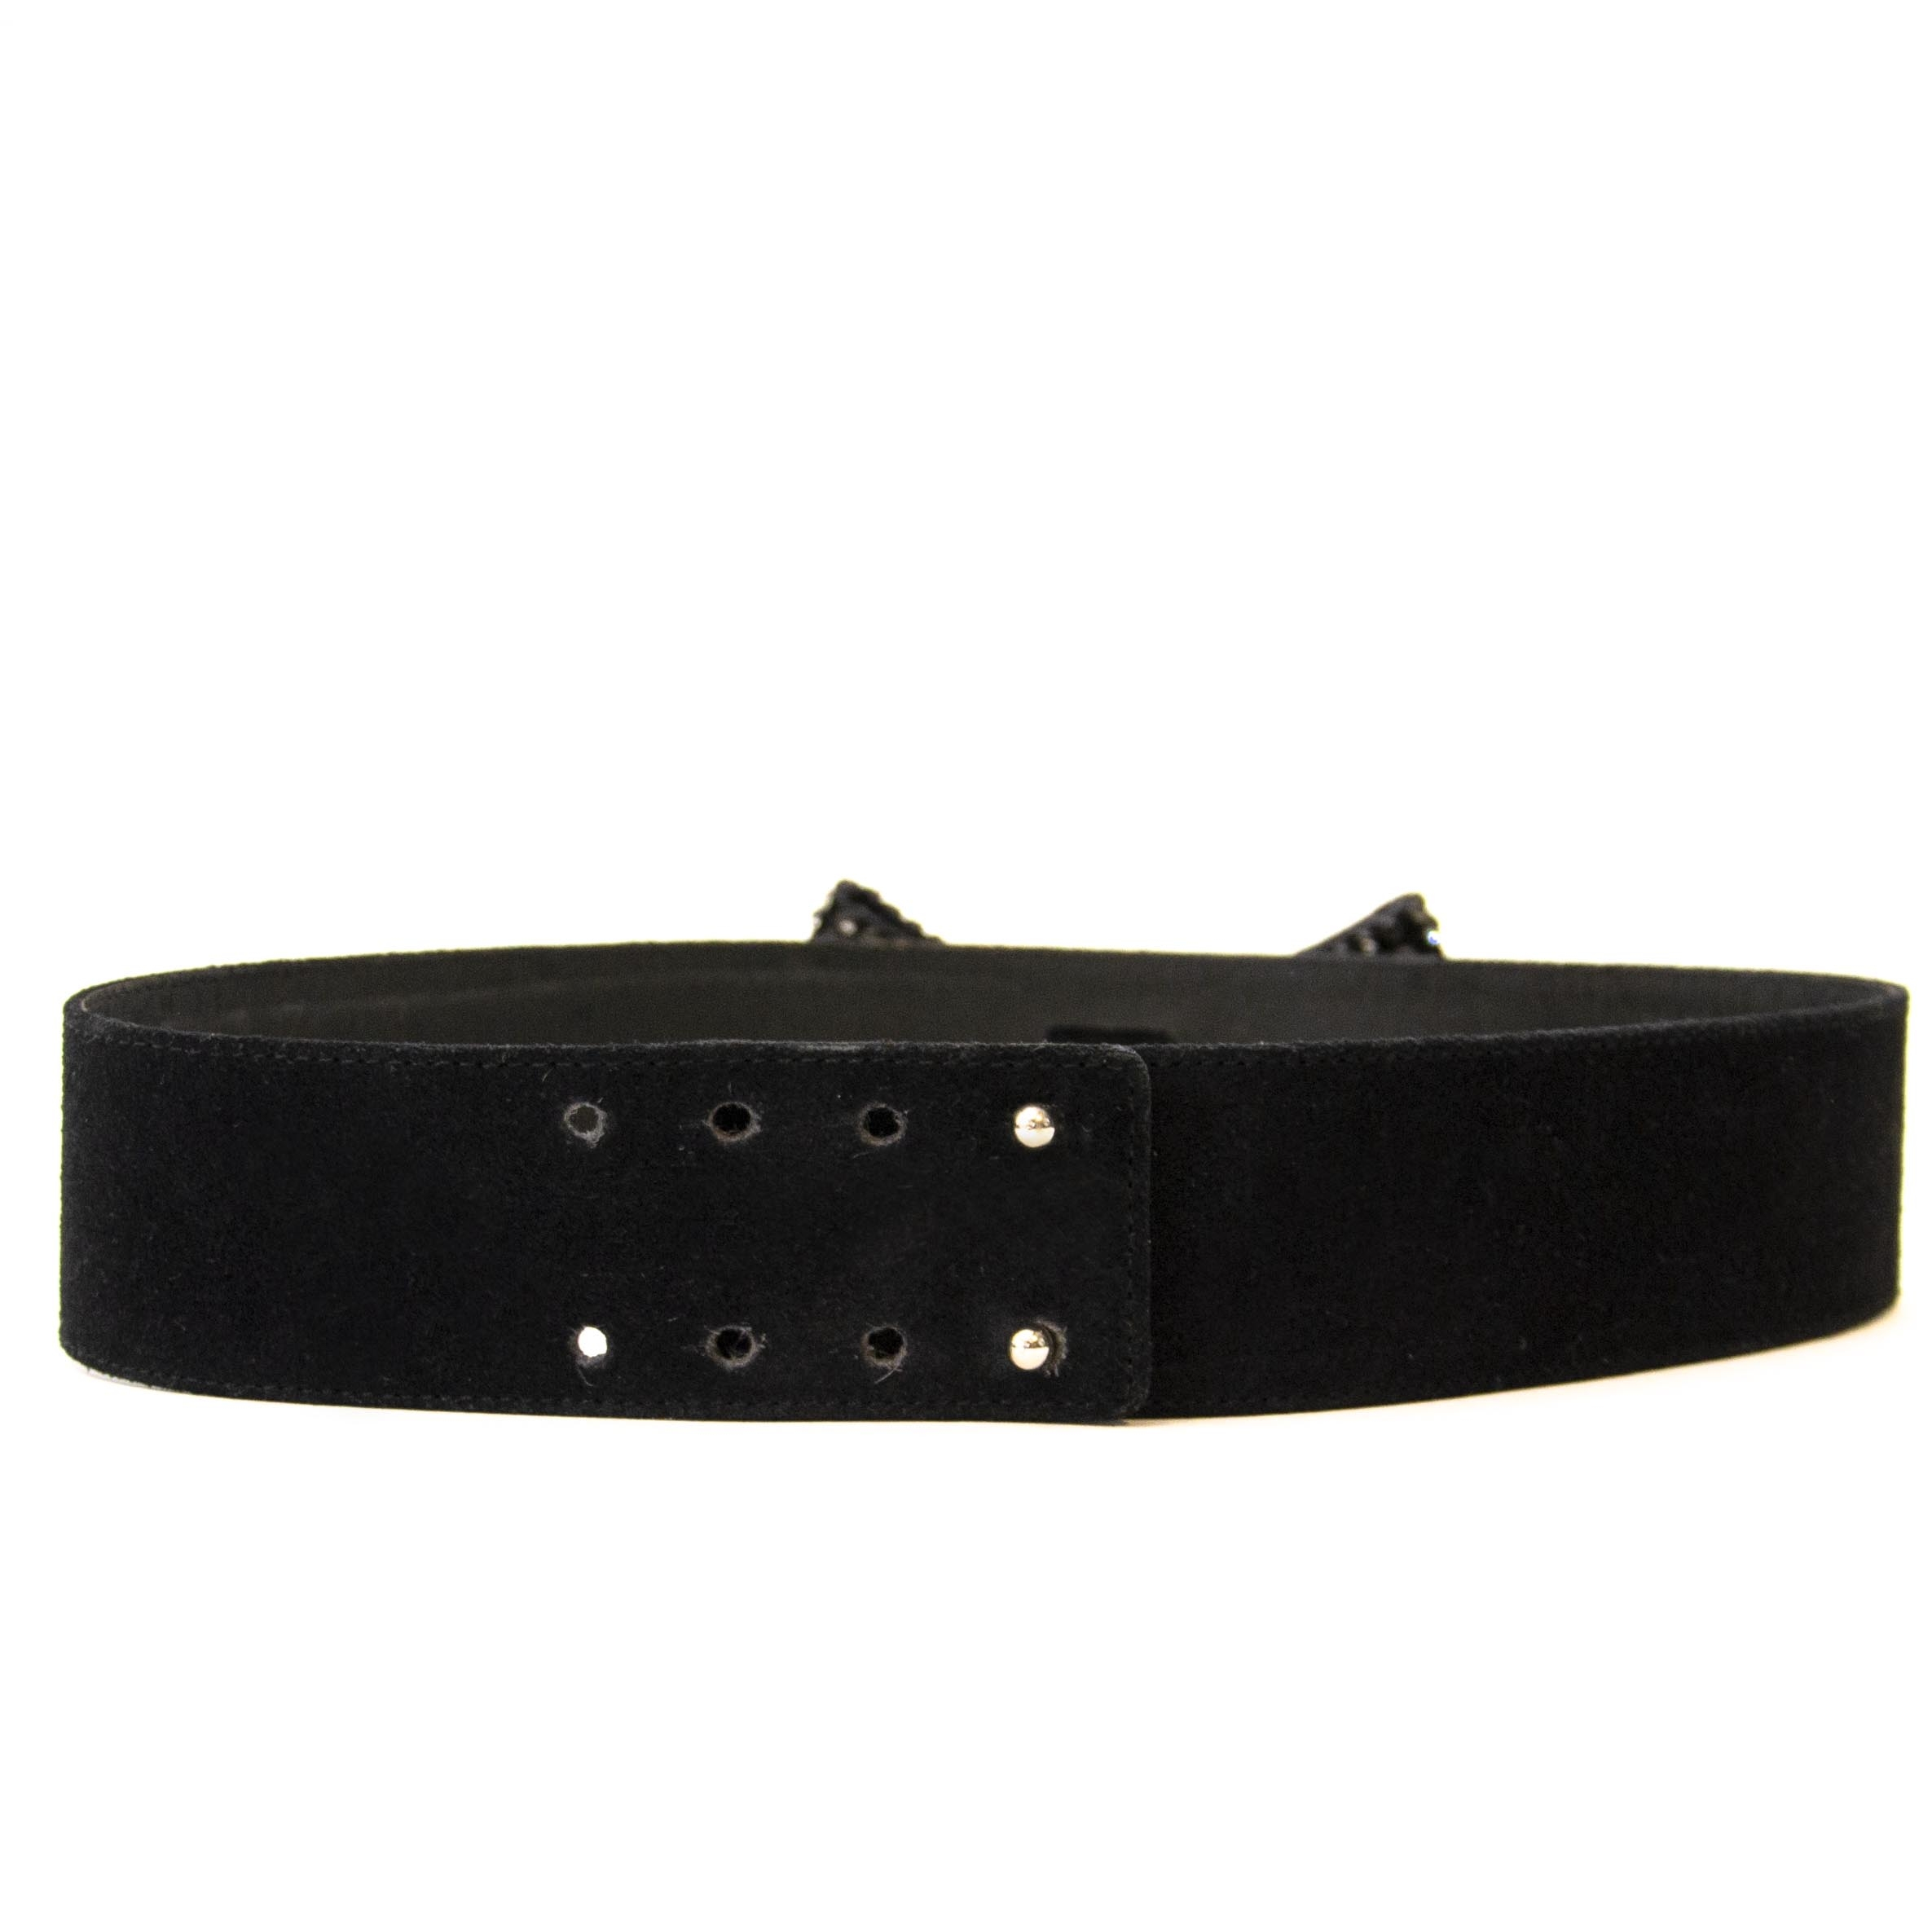 Yves Saint Laurent Black Suede Bow Belt - Size 70. Buy authentic secondhand Delvaux belts at Labellov vintage fashion webshop for the lowest price. Koop authentieke tweedehands Delvaux riemen bij Labellov vintage mode webshop voor de laagste prijs.